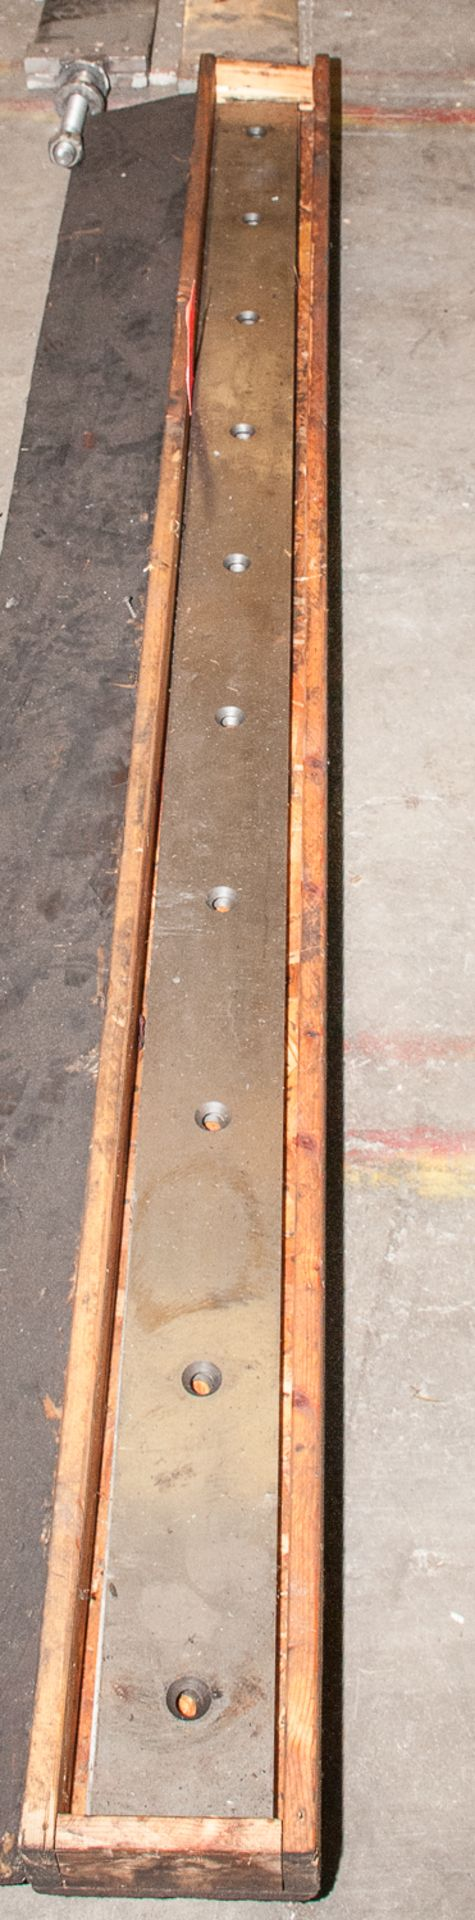 Extra Shear Blades (used) and Seperator guides for Lot 52 - Image 2 of 3